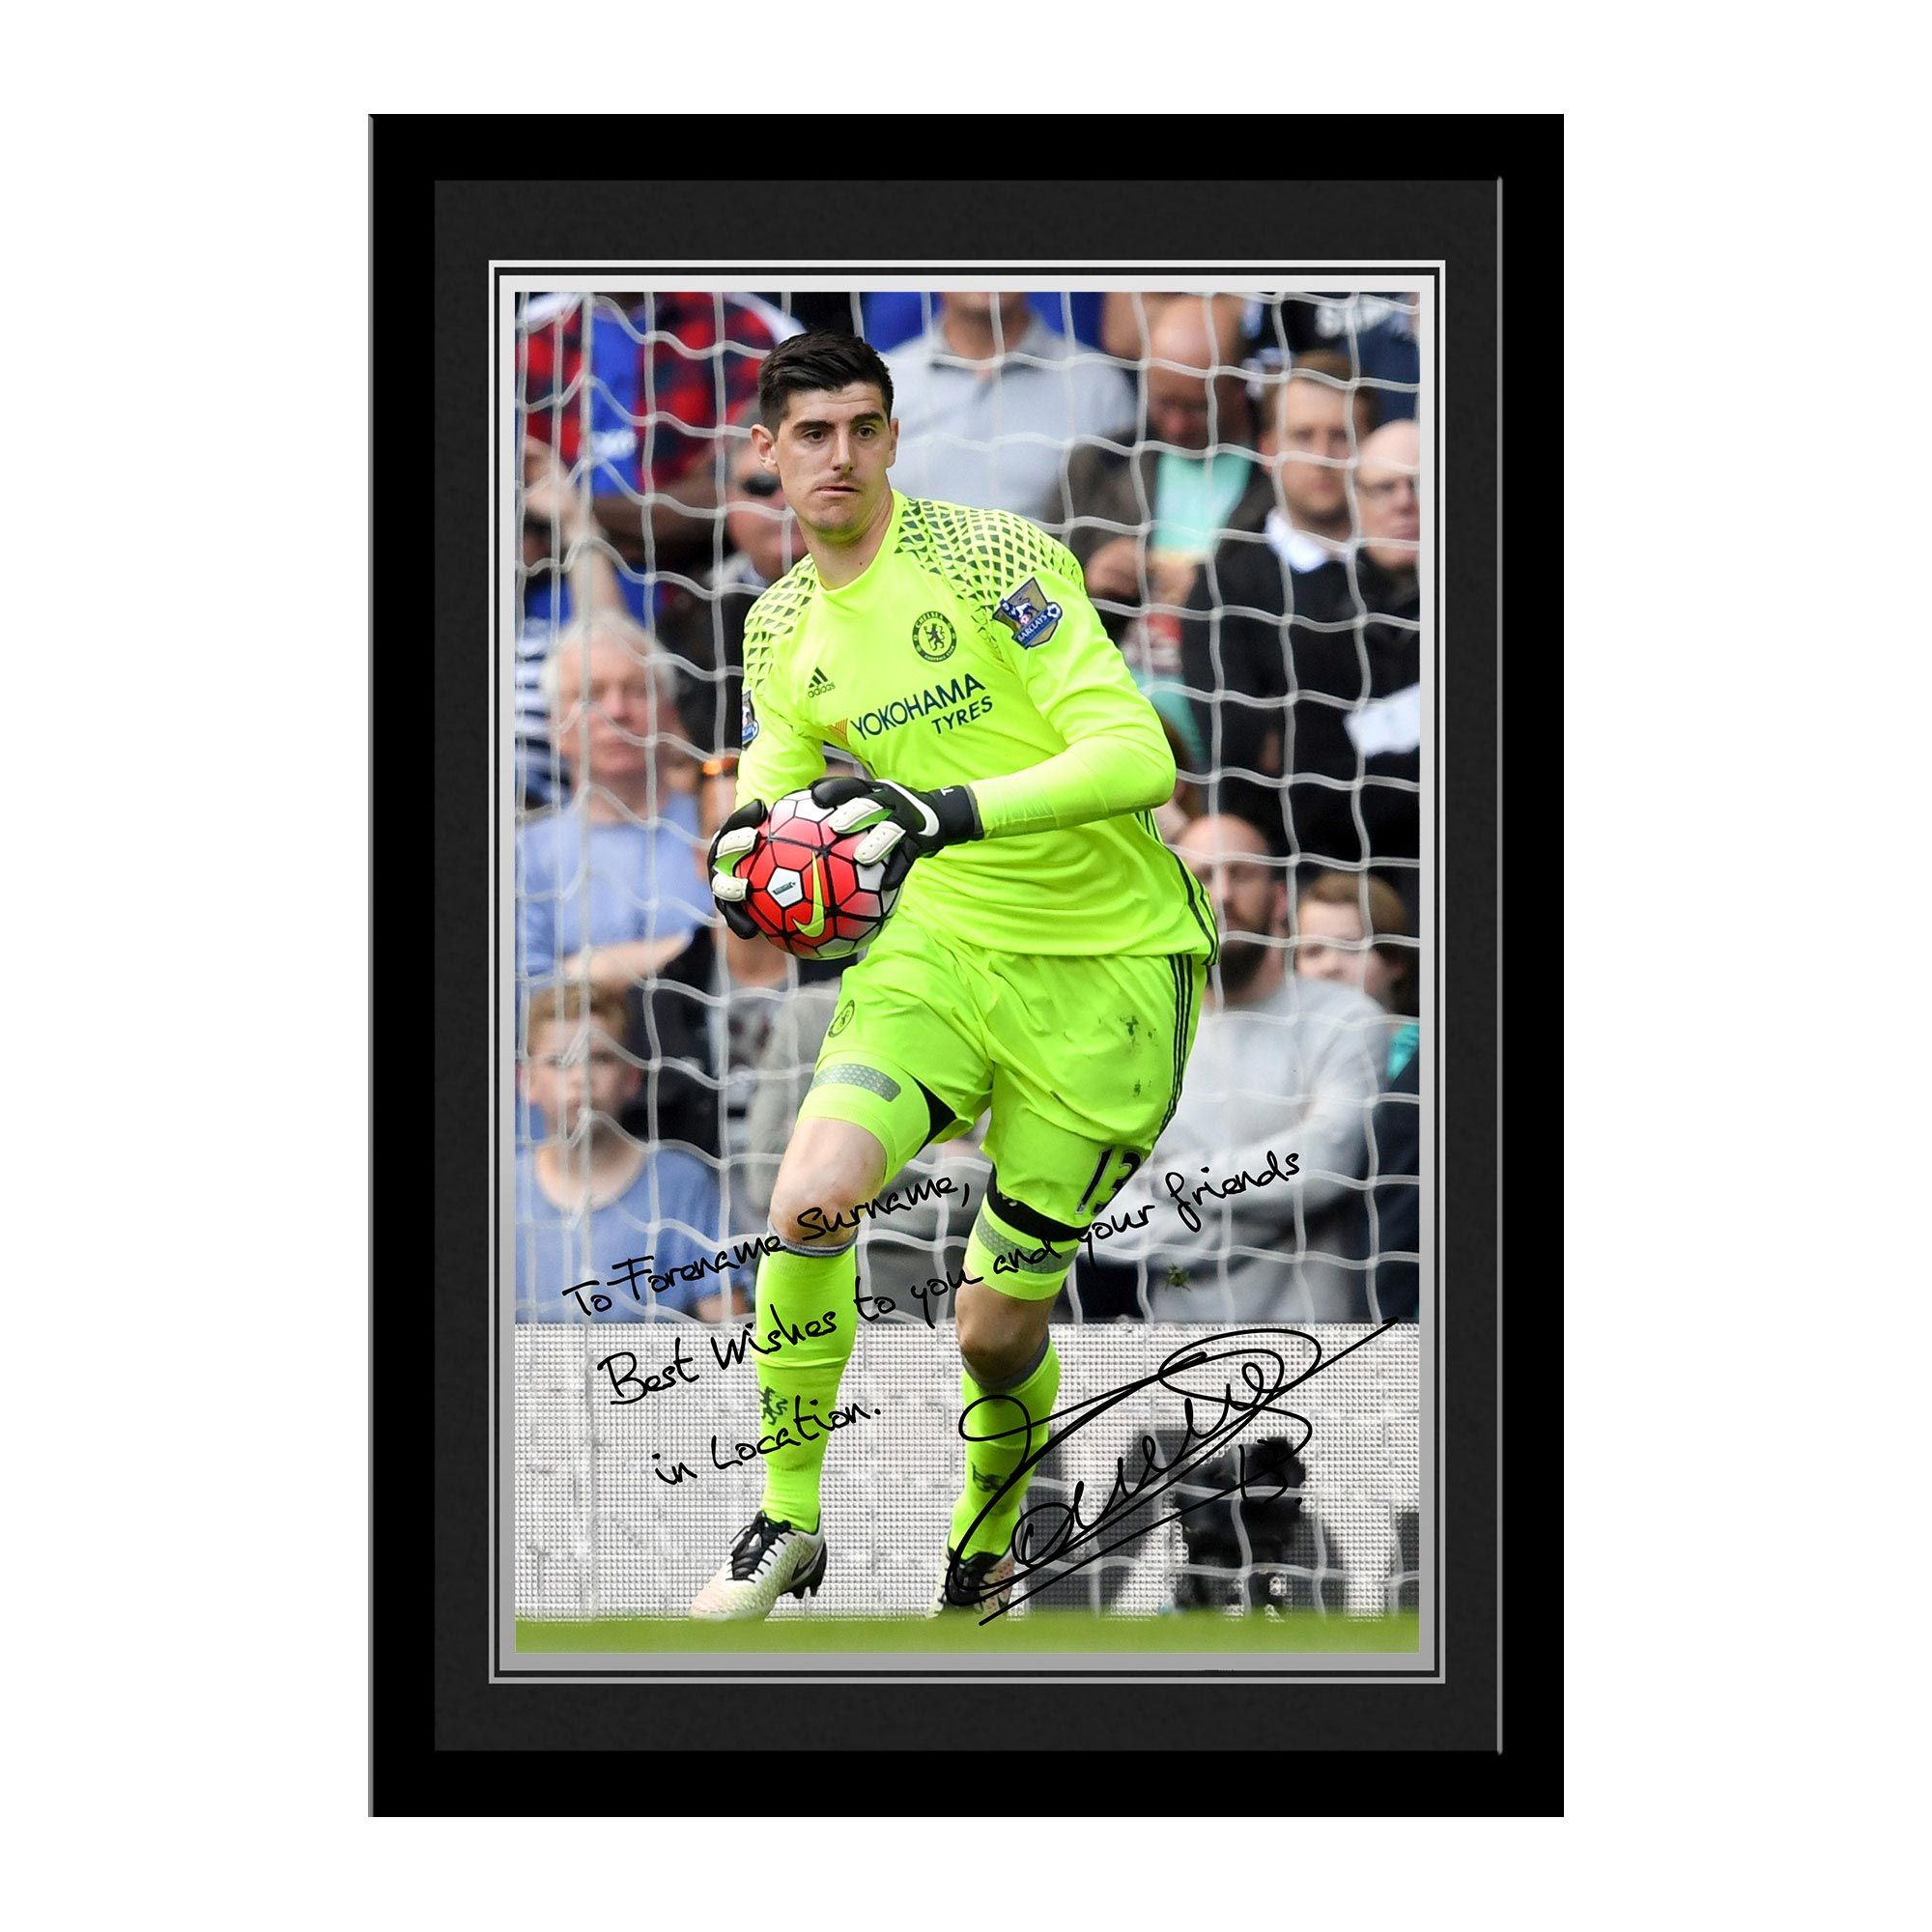 Chelsea Personalised Signature Photo Framed - Courtois